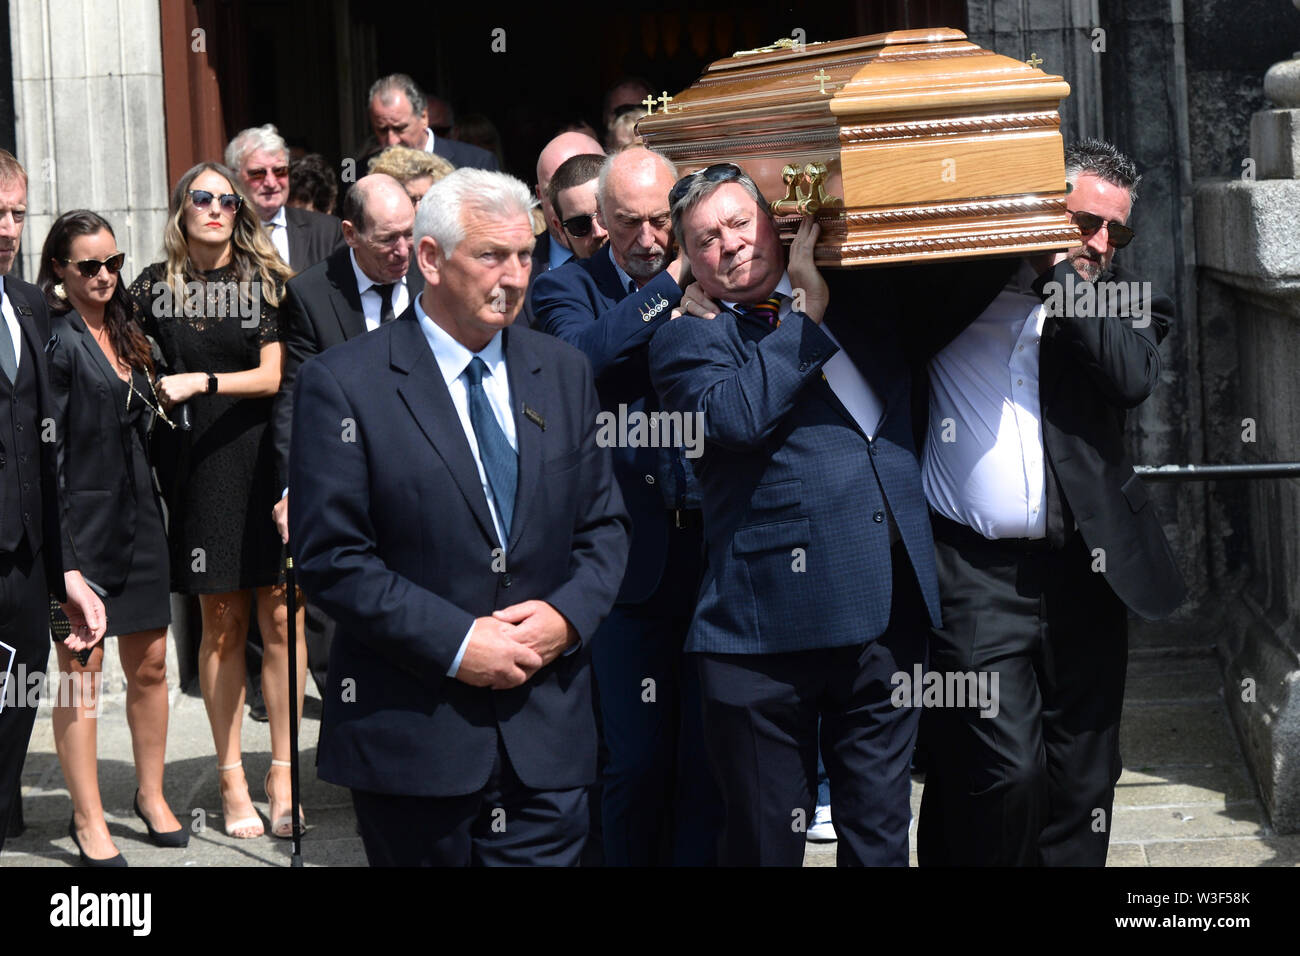 The coffin of Father Ted star Brendan Grace is carried out of the Church of St. Nicholas of Myra, Dublin. - Stock Image